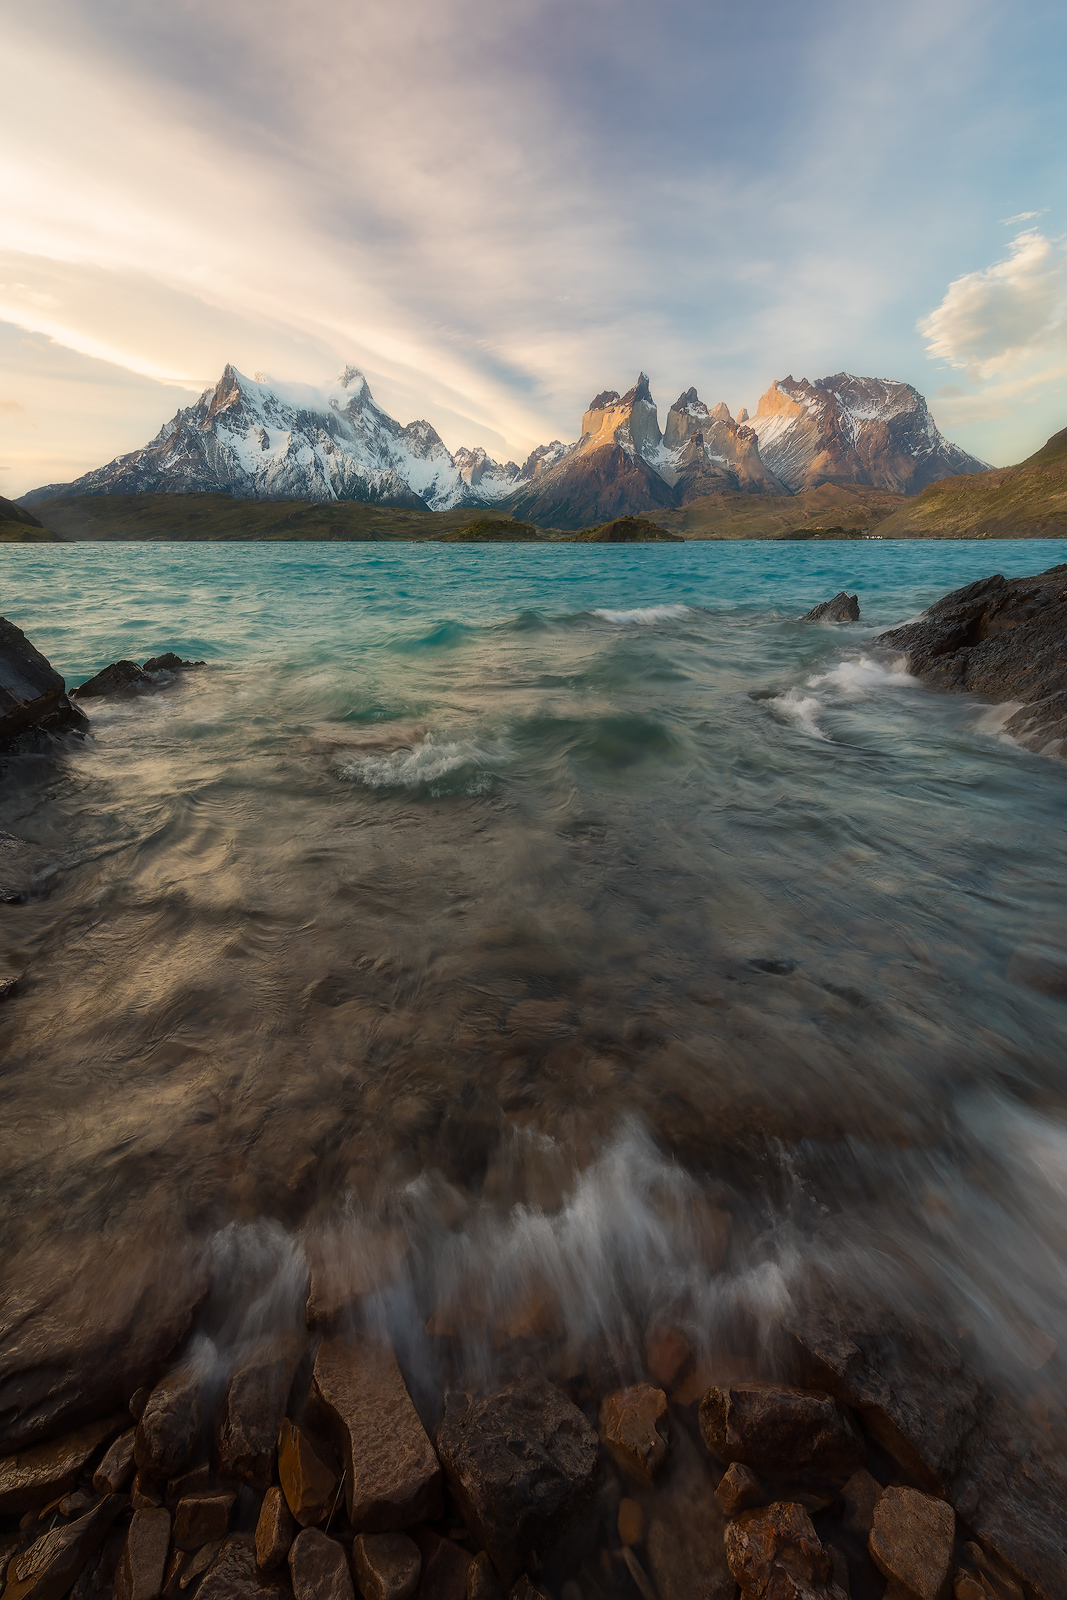 Spring, andes mountains, beautiful, camping pehoe, cerro paine grande, chile, evening, lago pehoé, lake, landscape, los cuernos, mountain, mountain range, patagonia, snow, south america, sunset, torre, photo